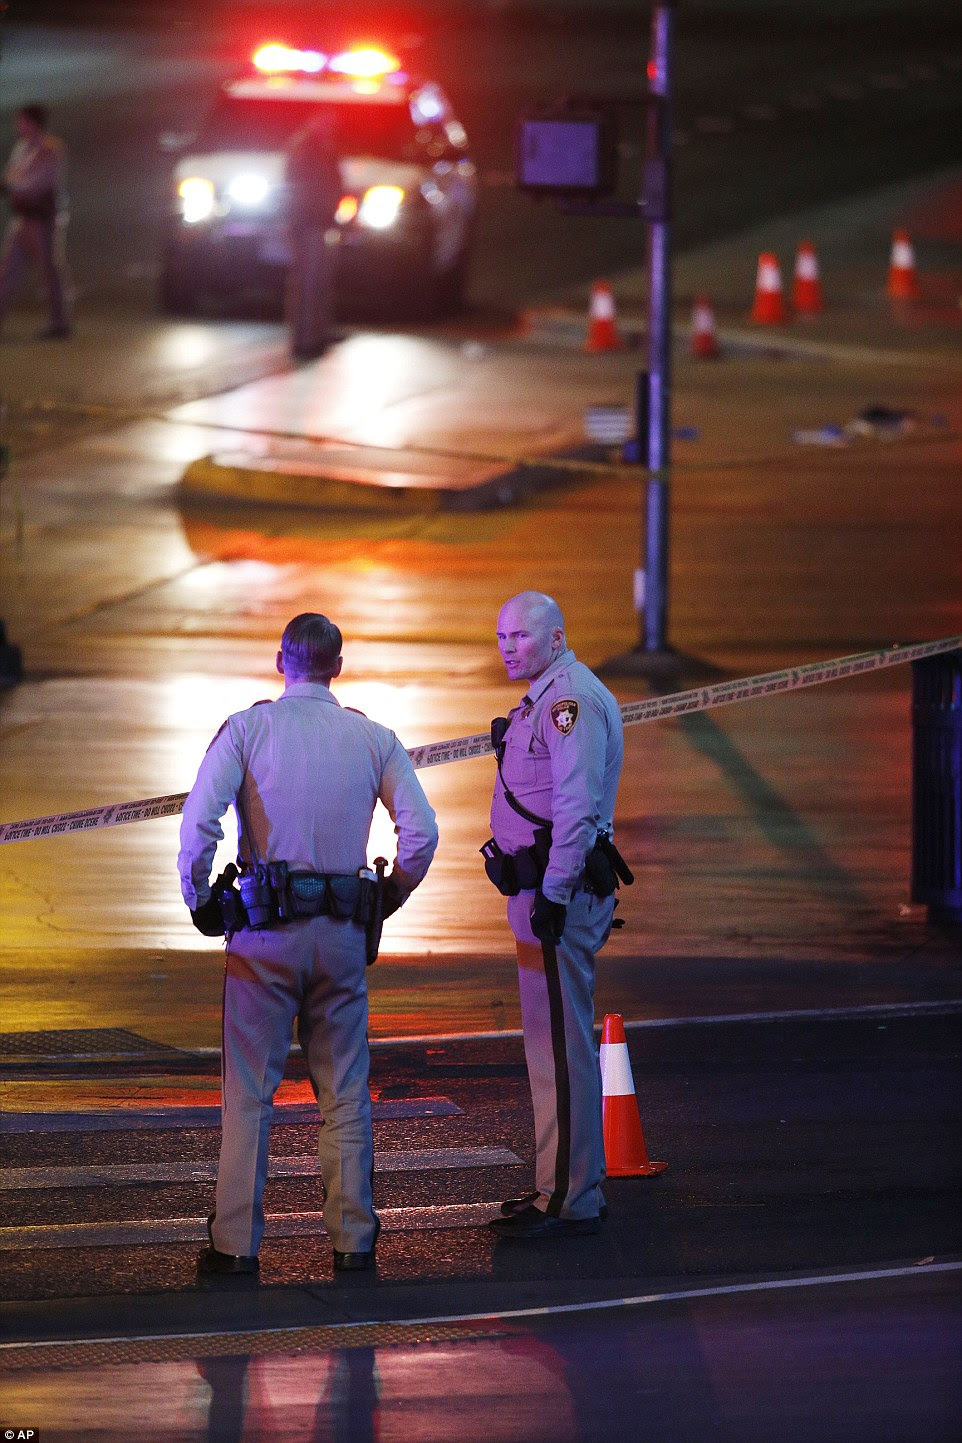 Zimmerman said that the suspect drove onto the sidewalk once hitting pedestrians, then moments later drove onto the sidewalk again at a different spot of Las Vegas Boulevard, striking more people